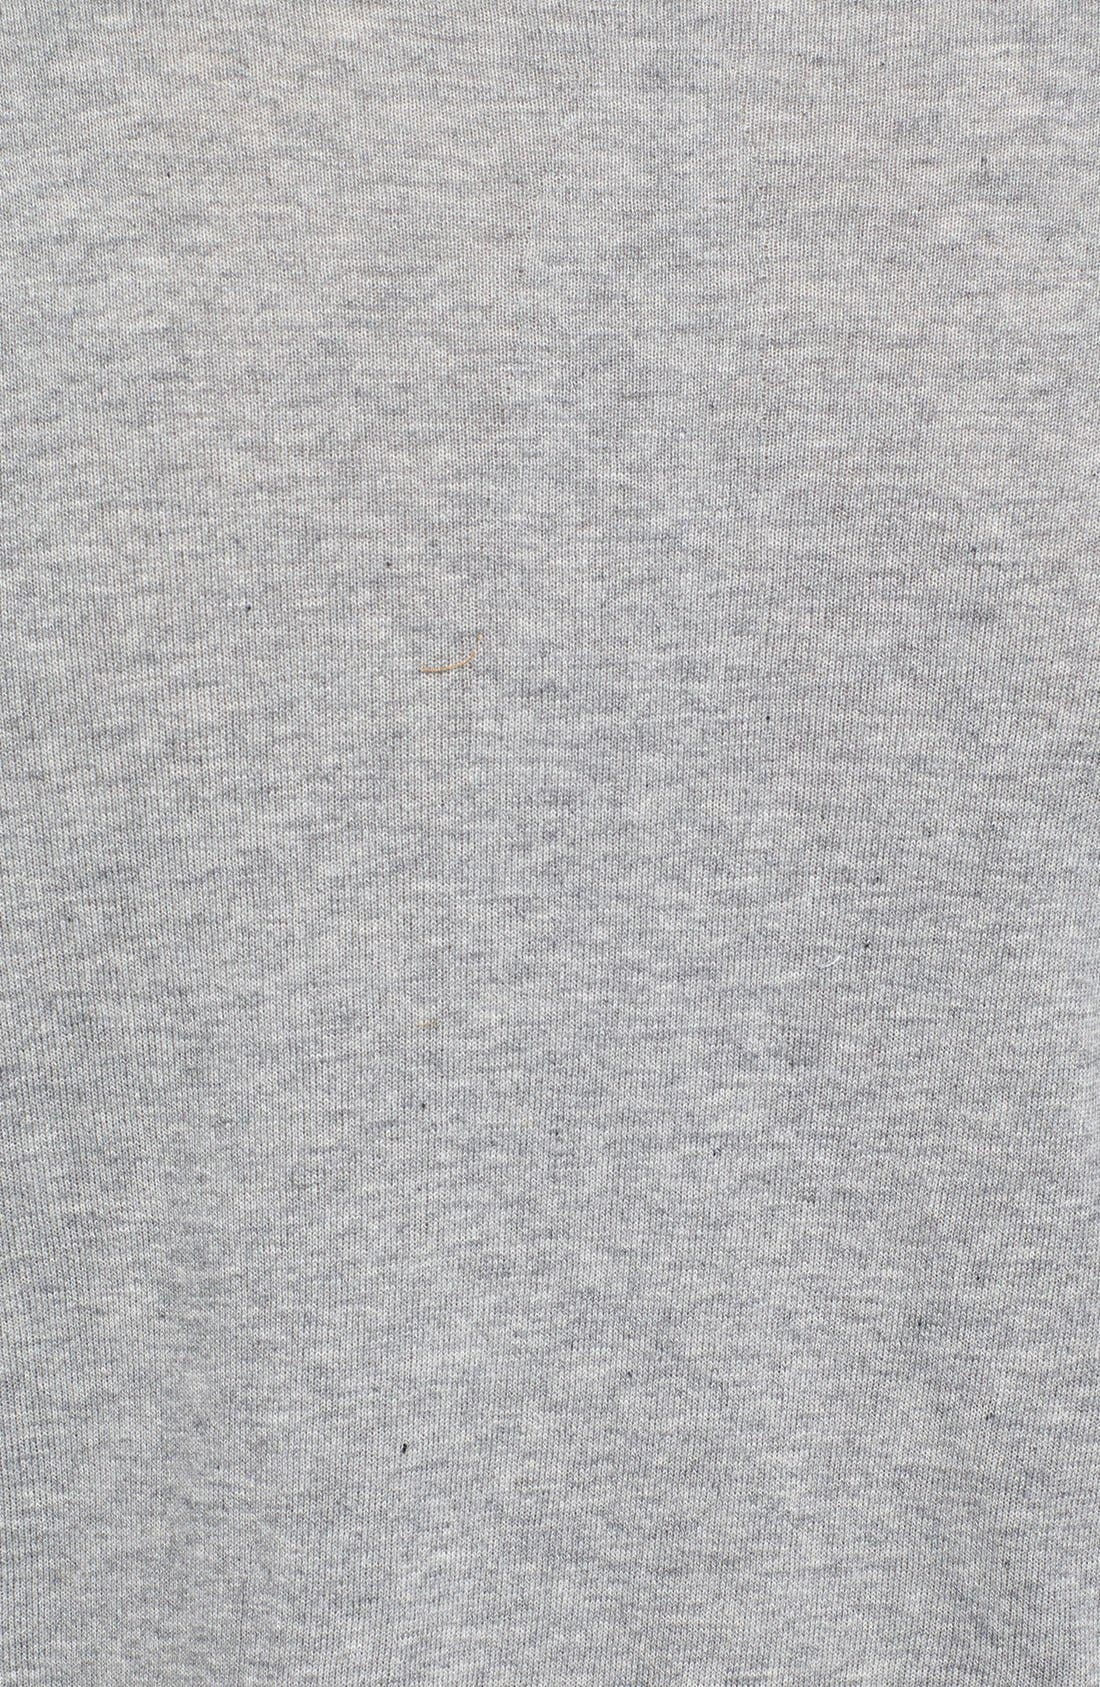 Alternate Image 3  - BOSS HUGO BOSS 'Perinus' Crewneck Sweater